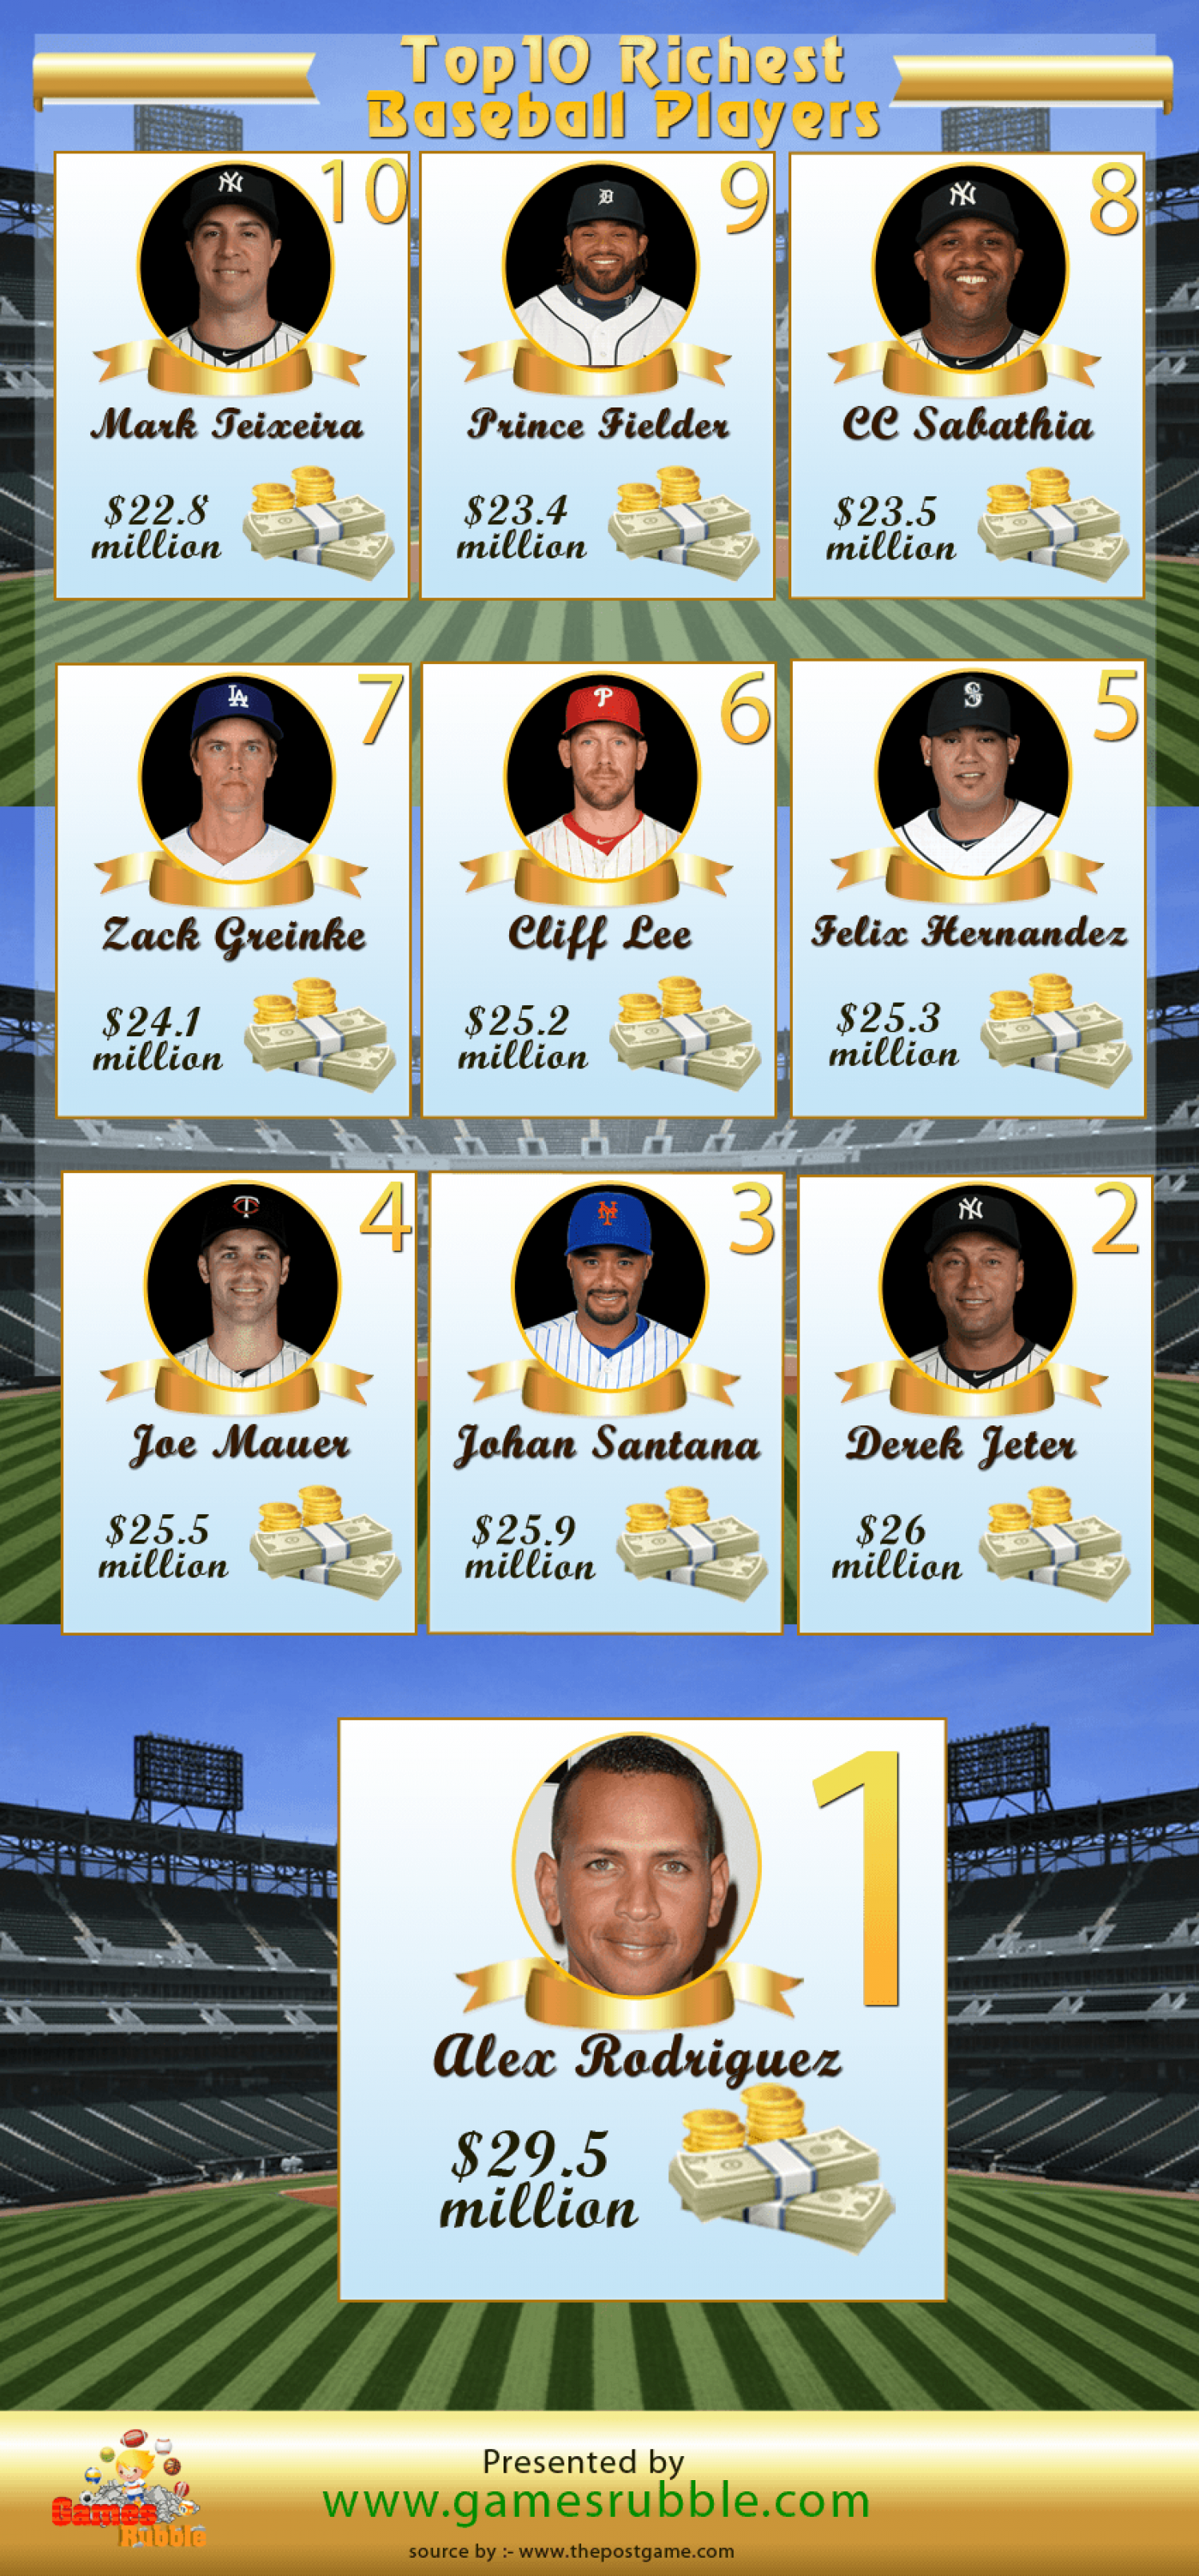 Ten Richest Baseball players Infographic